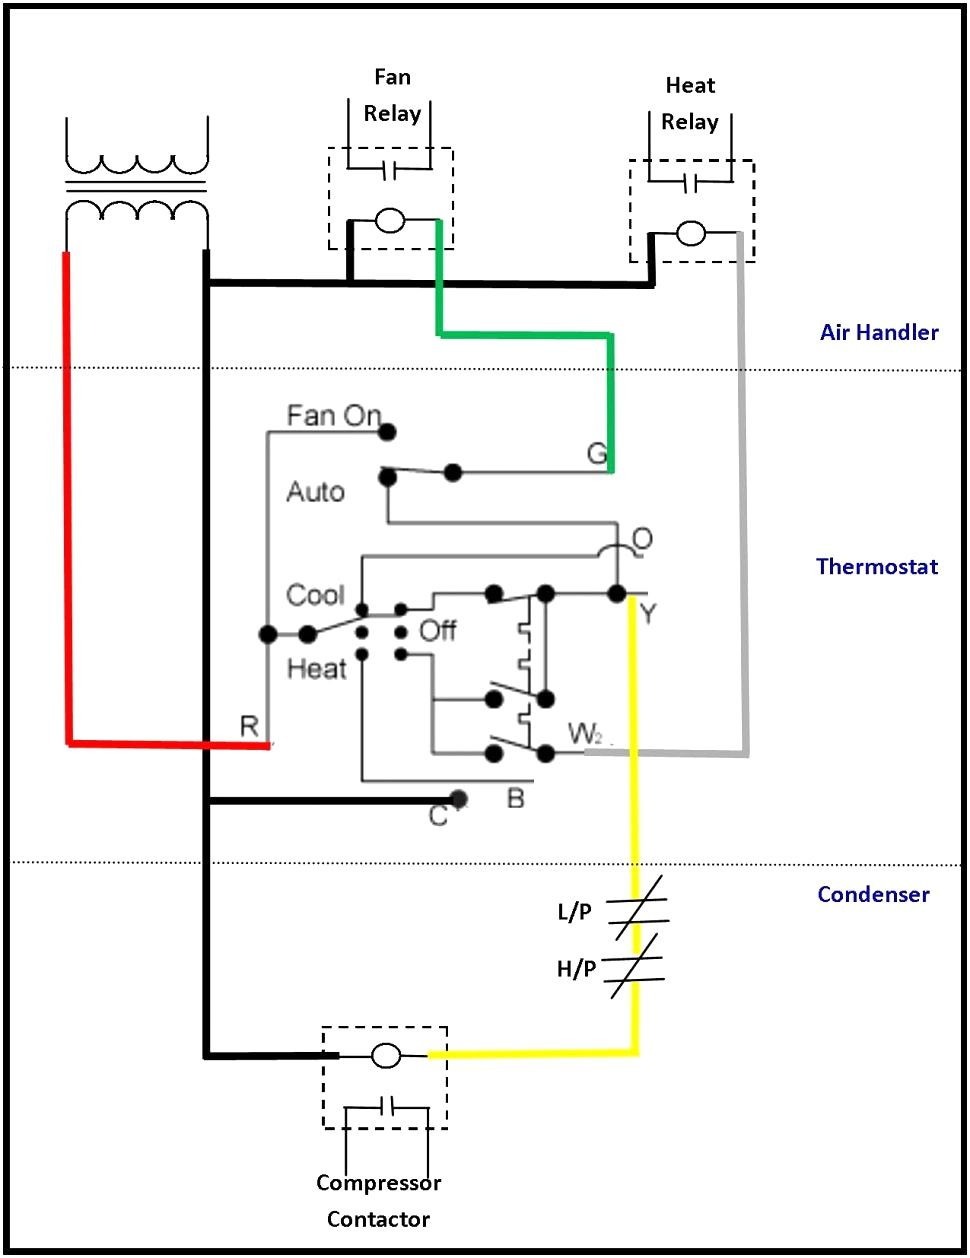 Hvac Contactor Relay Wiring Diagram - Mule 3010 Snow Plow Wiring Diagram -  power-poles.kankubuktikan.jeanjaures37.fr | Hvac Contactor Relay Wiring Diagram |  | Wiring Diagram Resource